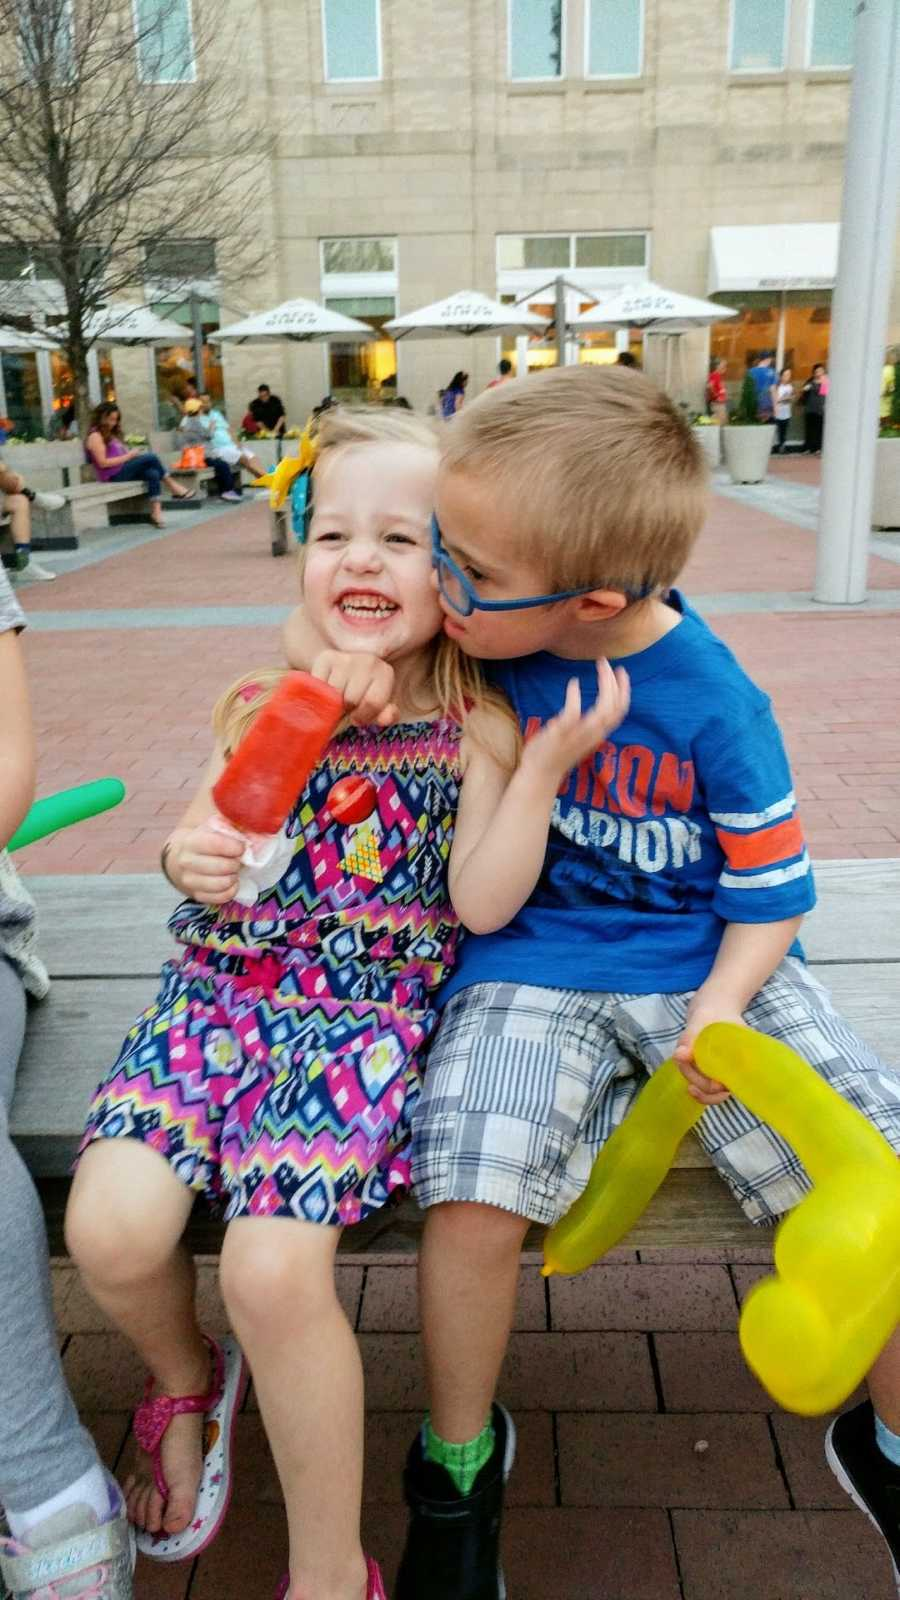 Sister and brother sitting outside with brother kissing sister on the cheek